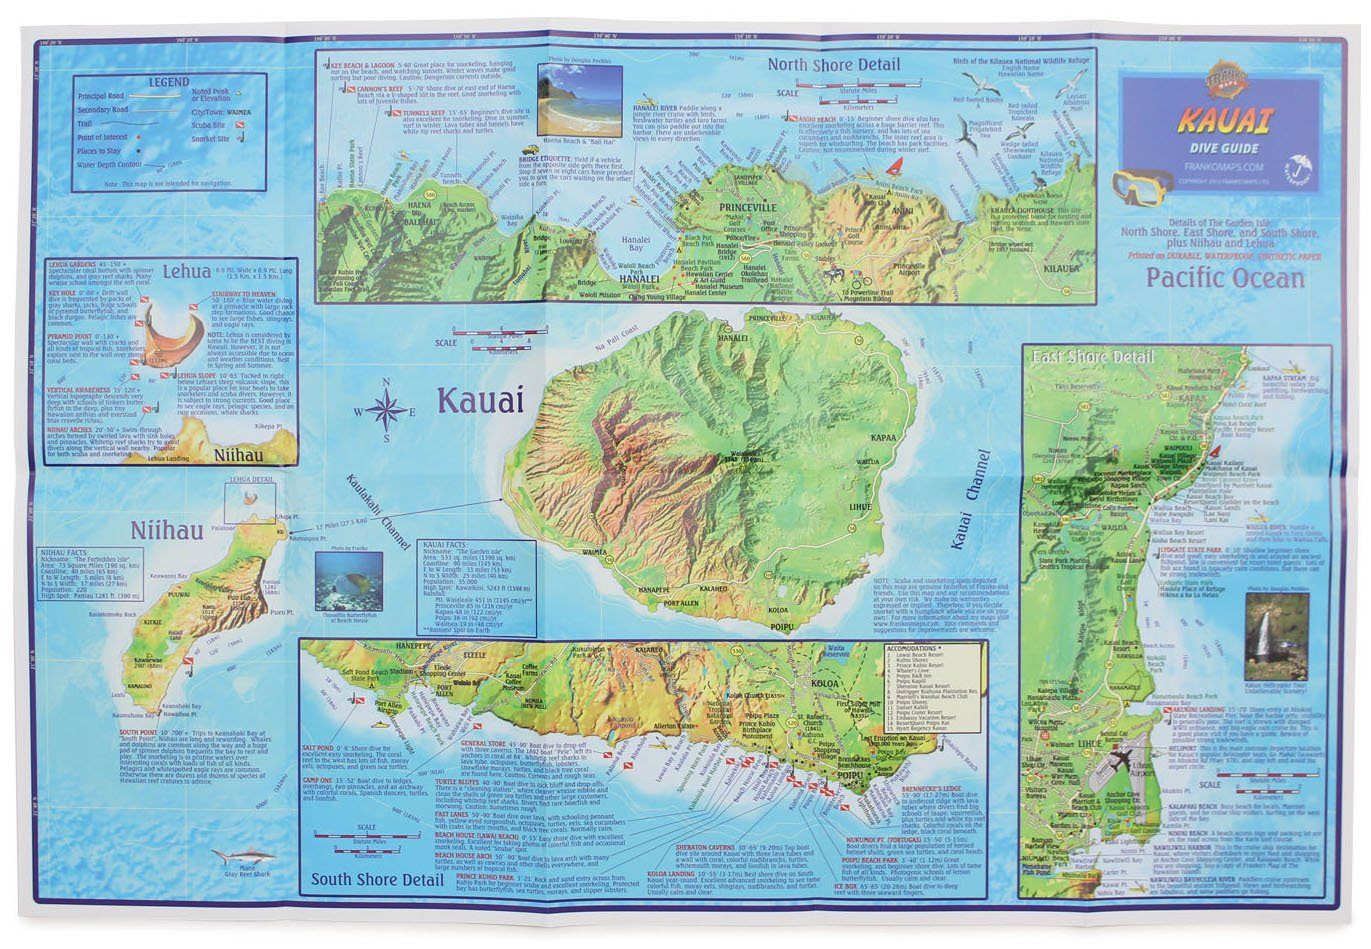 franko's dive map of kauai the garden isle frank nielsen amazoncom books. franko's dive map of kauai the garden isle frank nielsen